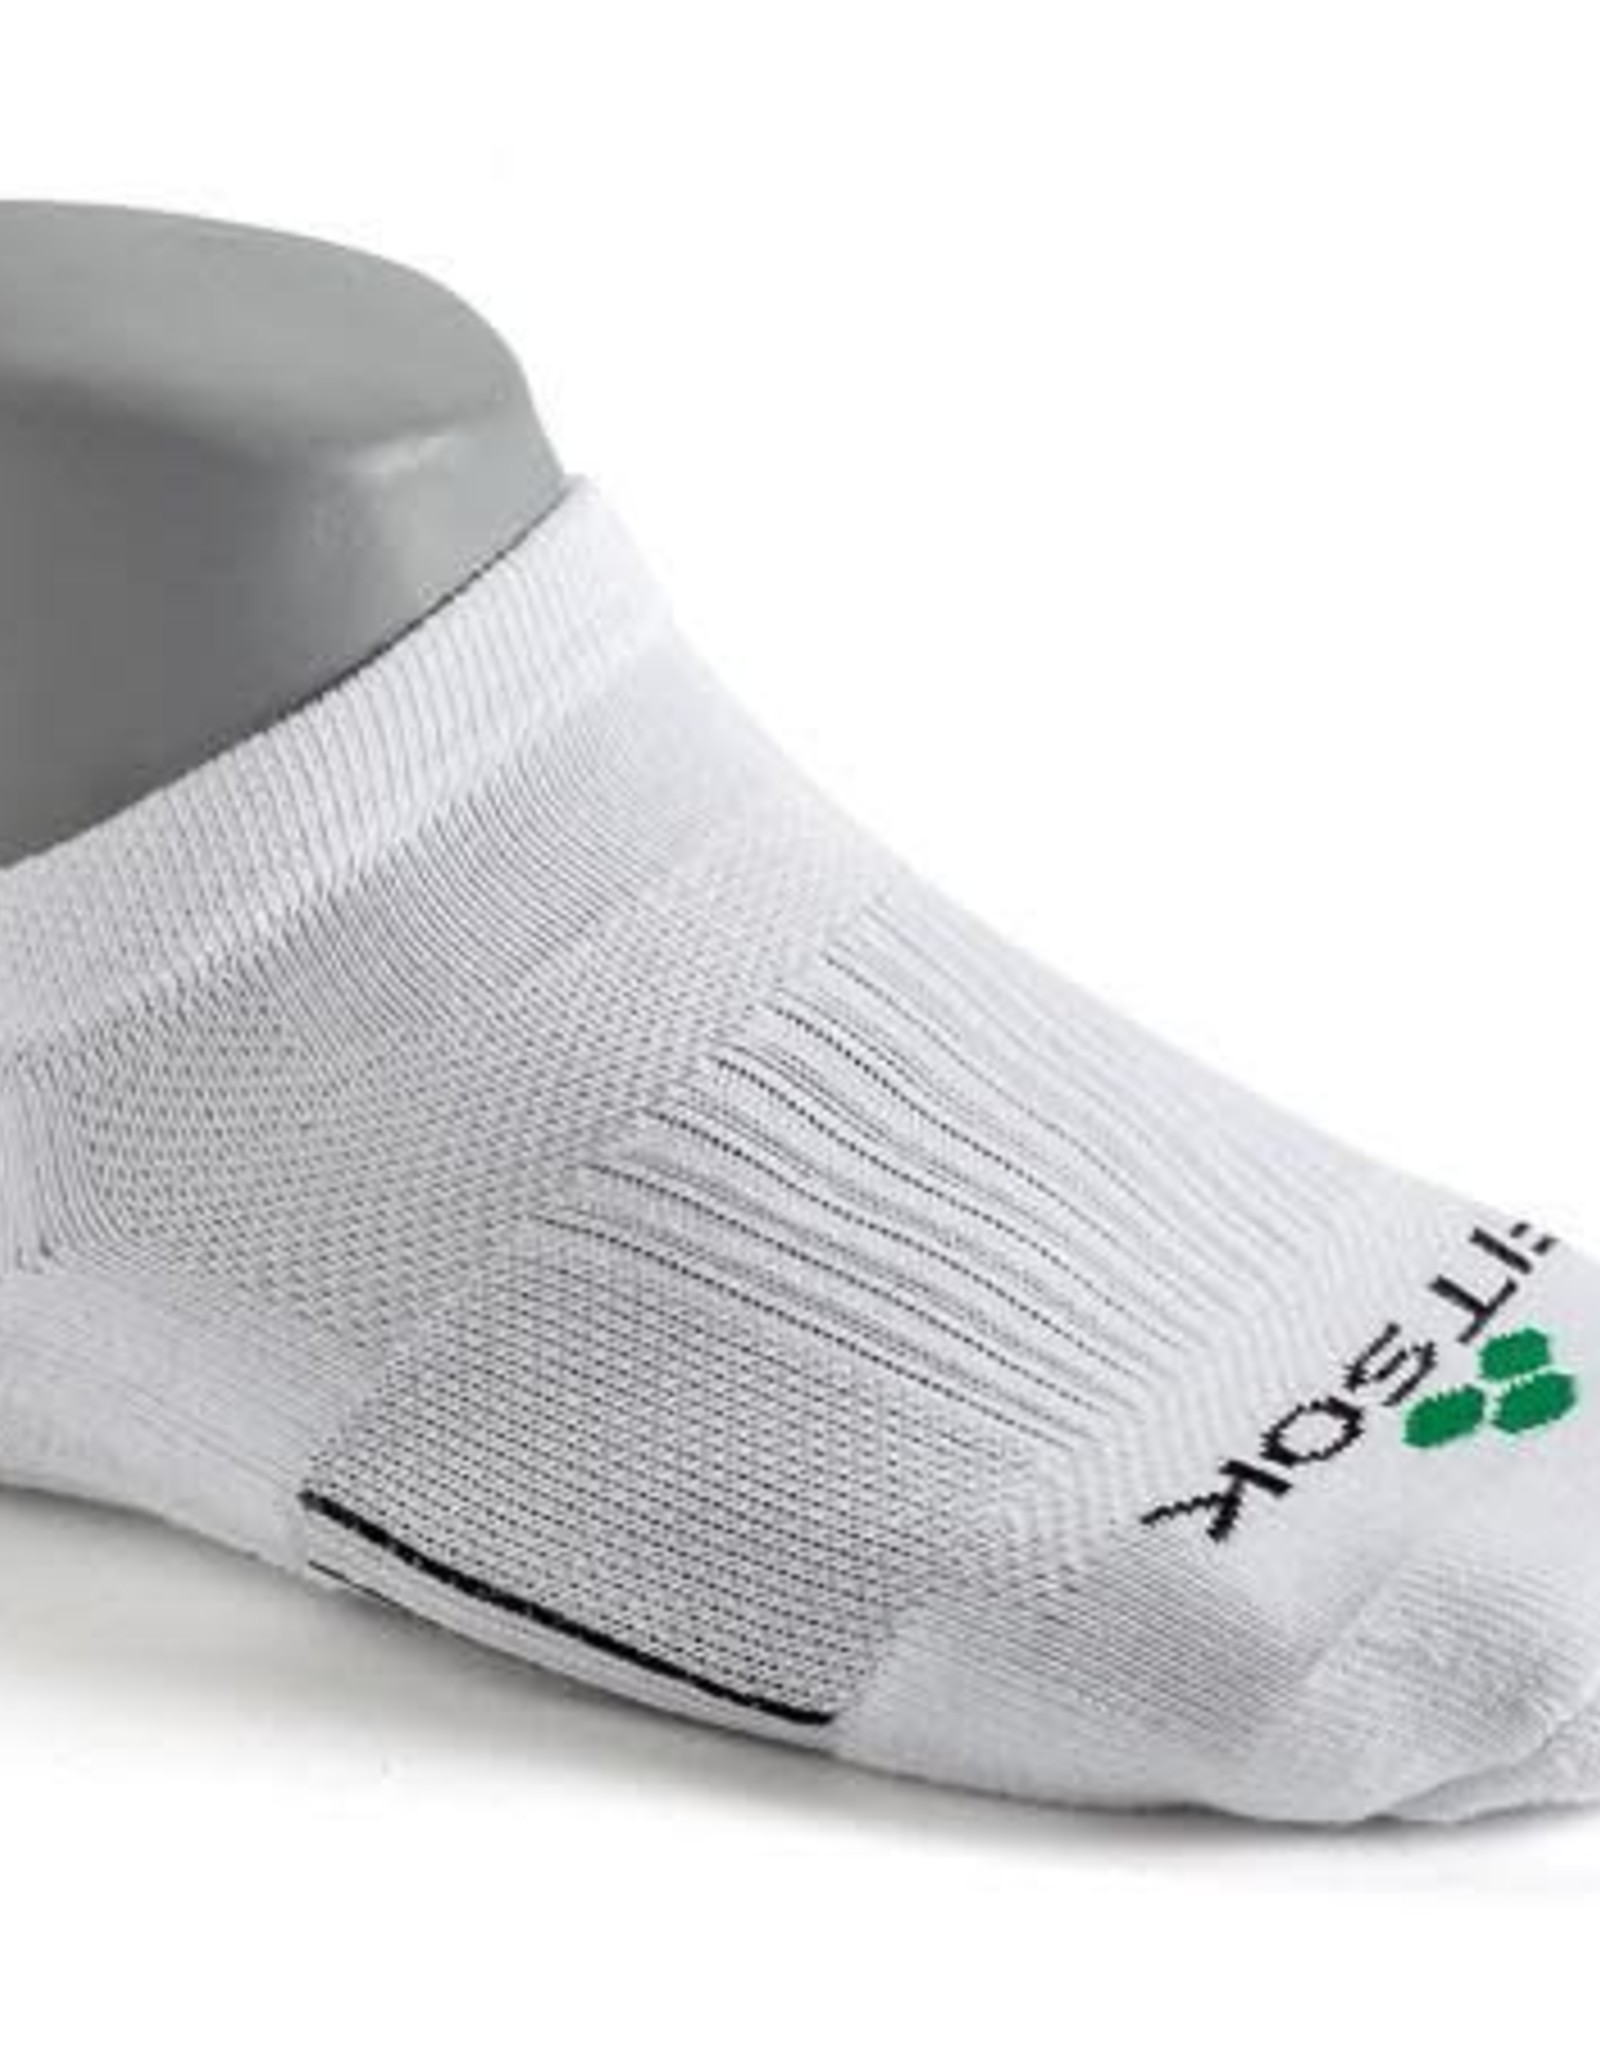 FITSOK CF2 SHADOW YARN TECH SOCK CUSH